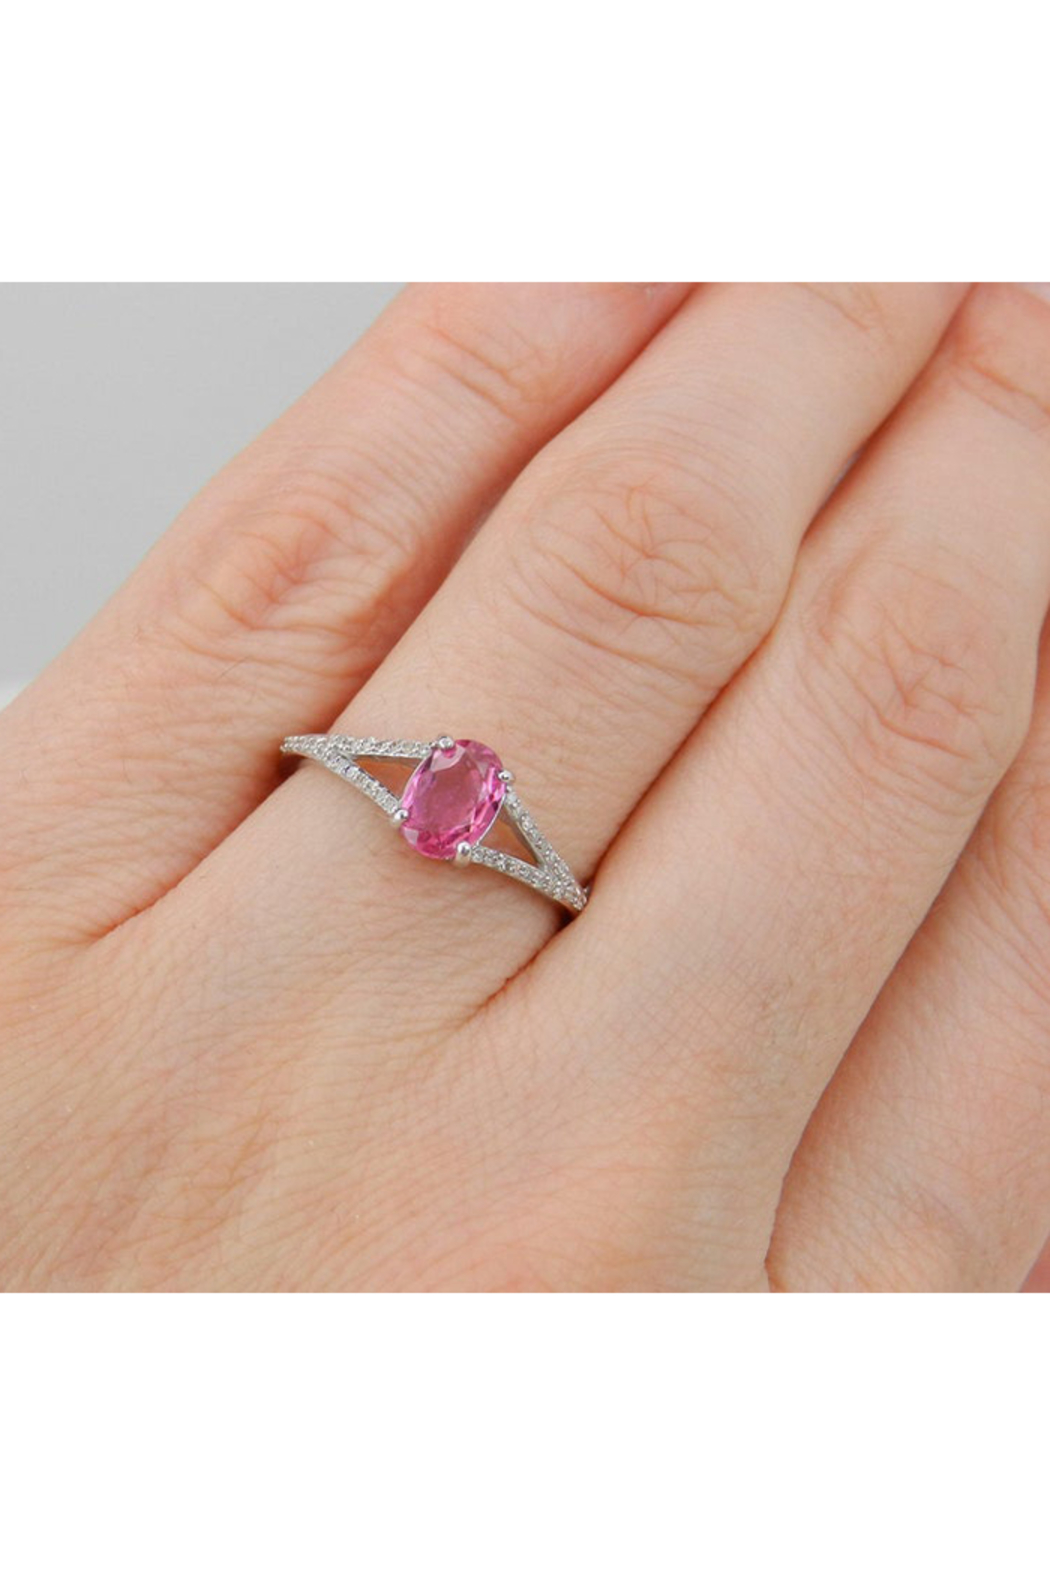 Margolin & Co Diamond and Pink Sapphire Ring, Pink Sapphire Engagement Ring, White Gold Promise Ring, Split Shank Engagement Ring, Size 7 FREE Sizing - Back Cropped Image